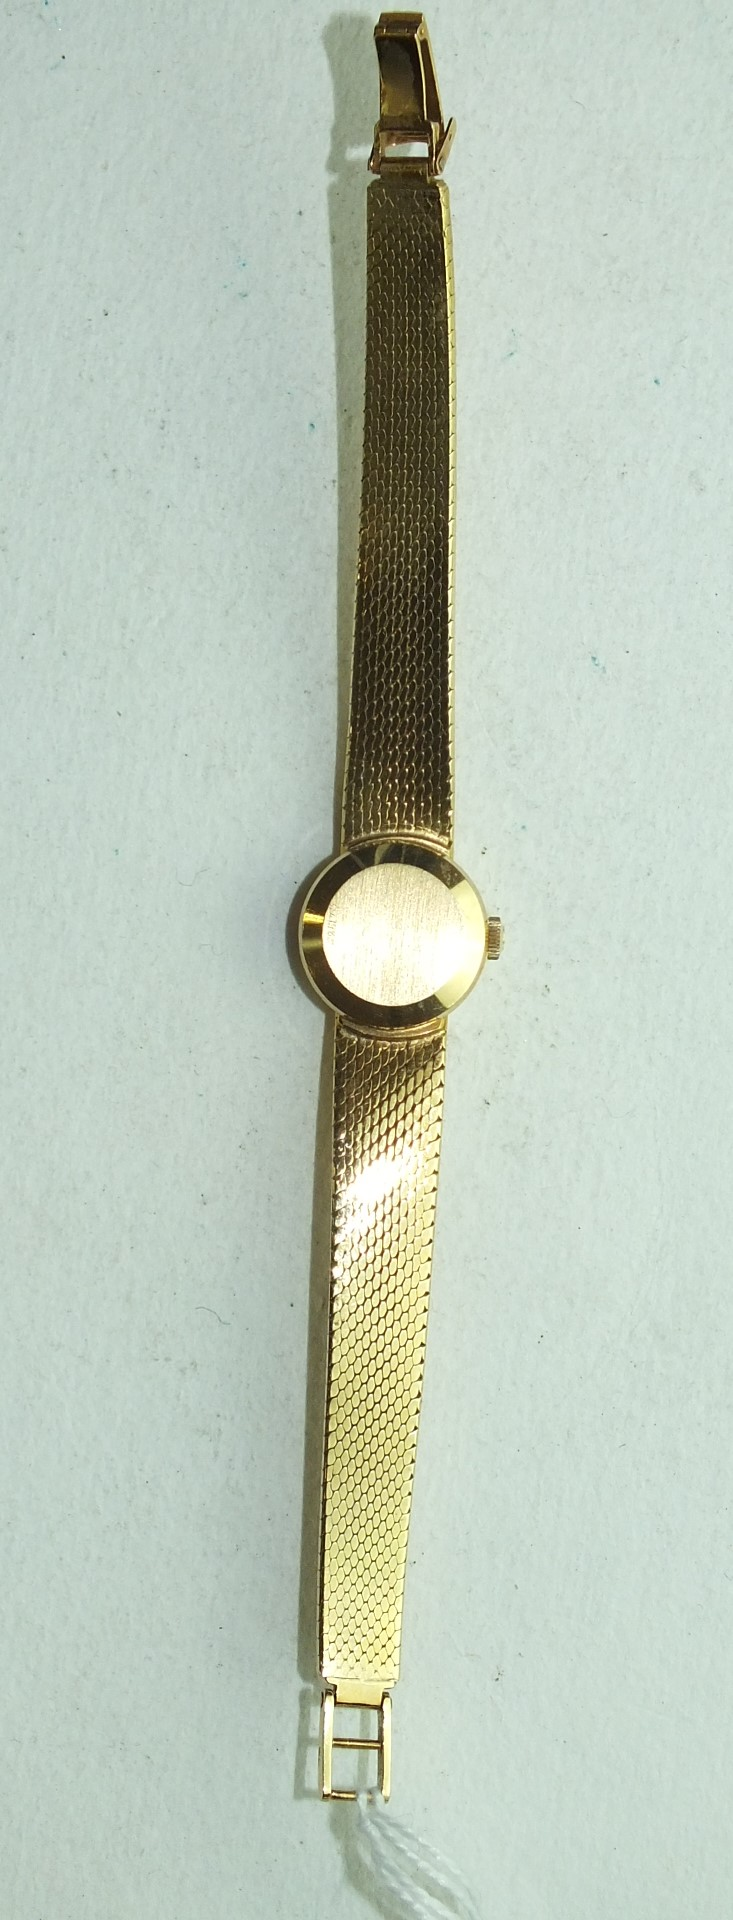 Lot 265 - Omega, a ladies Omega Ladymatic 18ct gold wrist watch, the round dial with claw-set accents, on